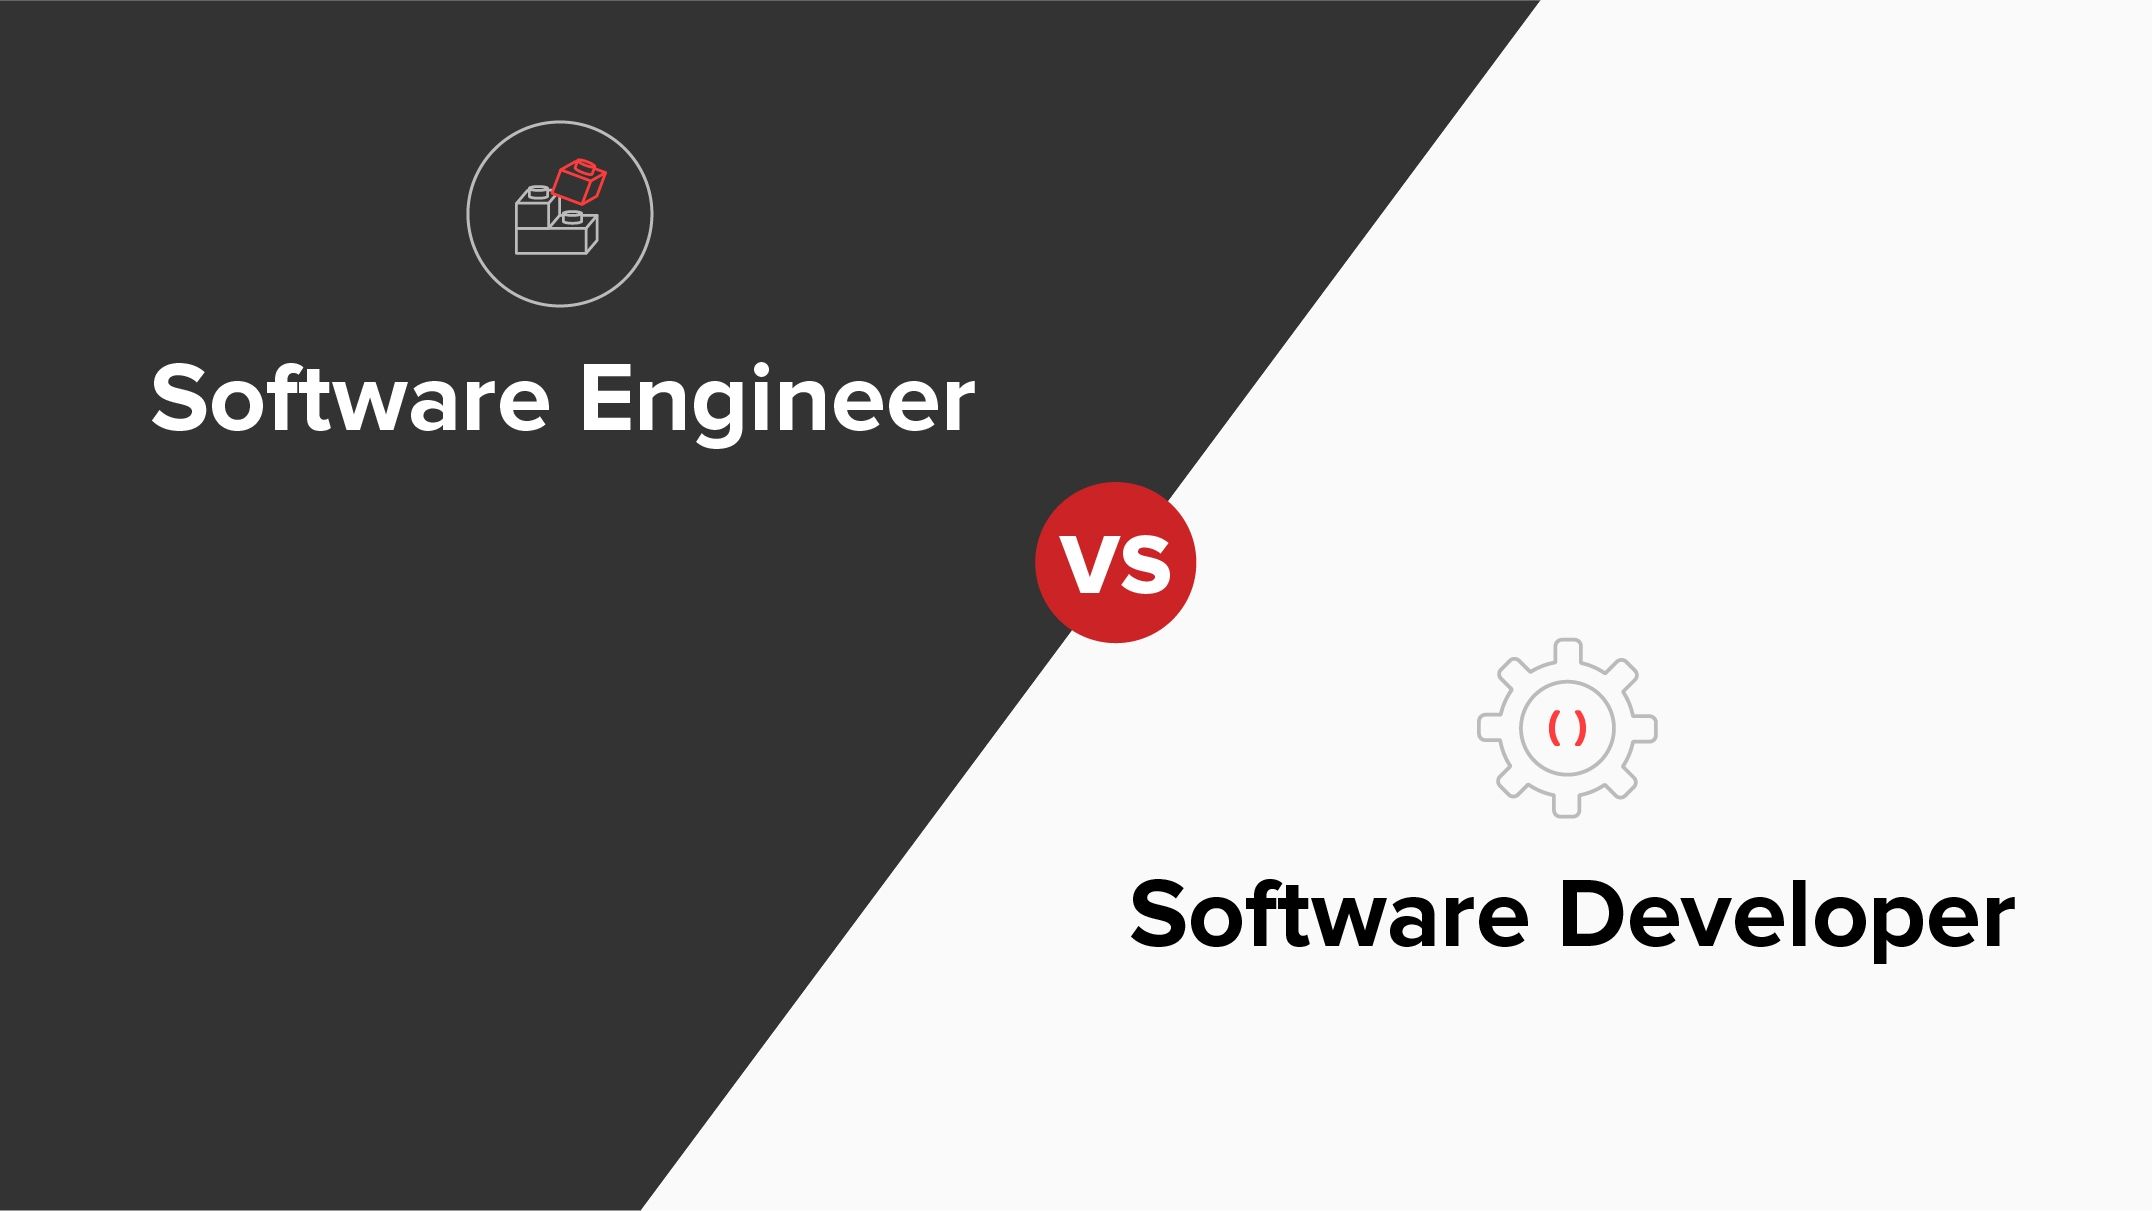 Software Engineer Vs Software Developer Post Header